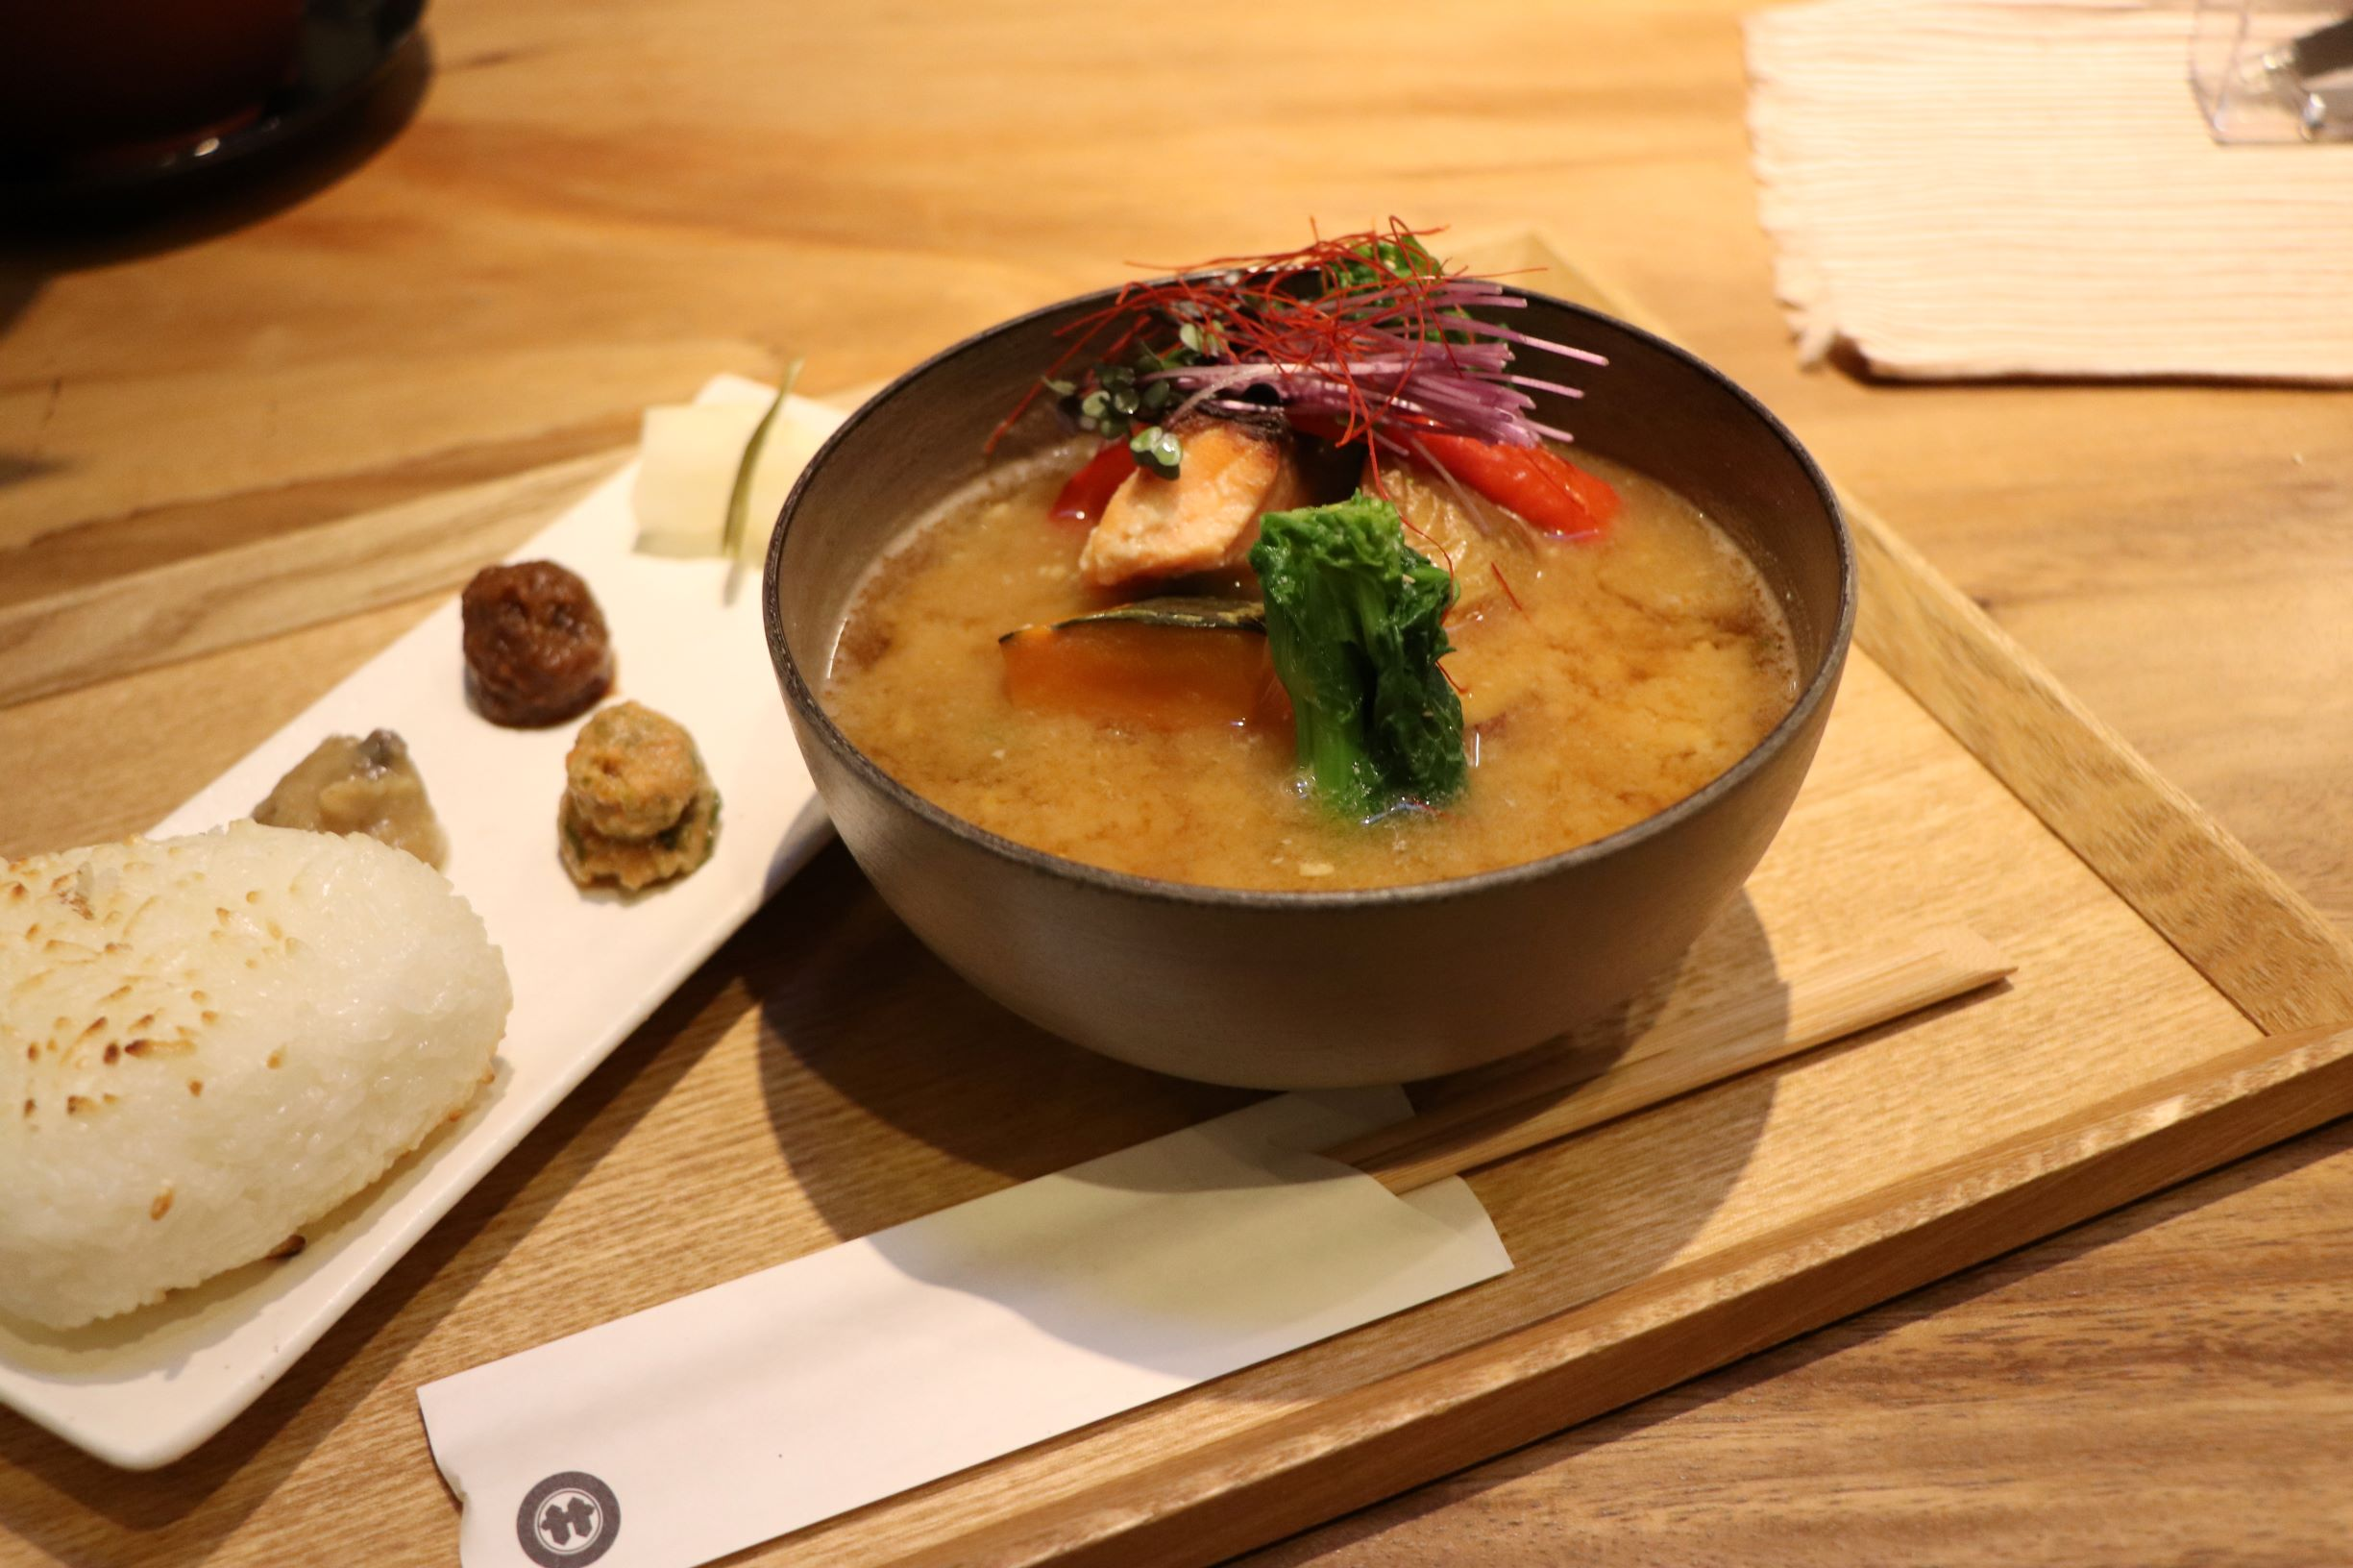 """[Koto Who's who in Koto-ku] """"Sano miso Kameido main store"""" president Masaaki Sano """"taste Land"""" """"grilled ingredients miso soup set rice ball"""" which can be served 1,018 yen. We can taste miso pudding or miso french toast, too."""